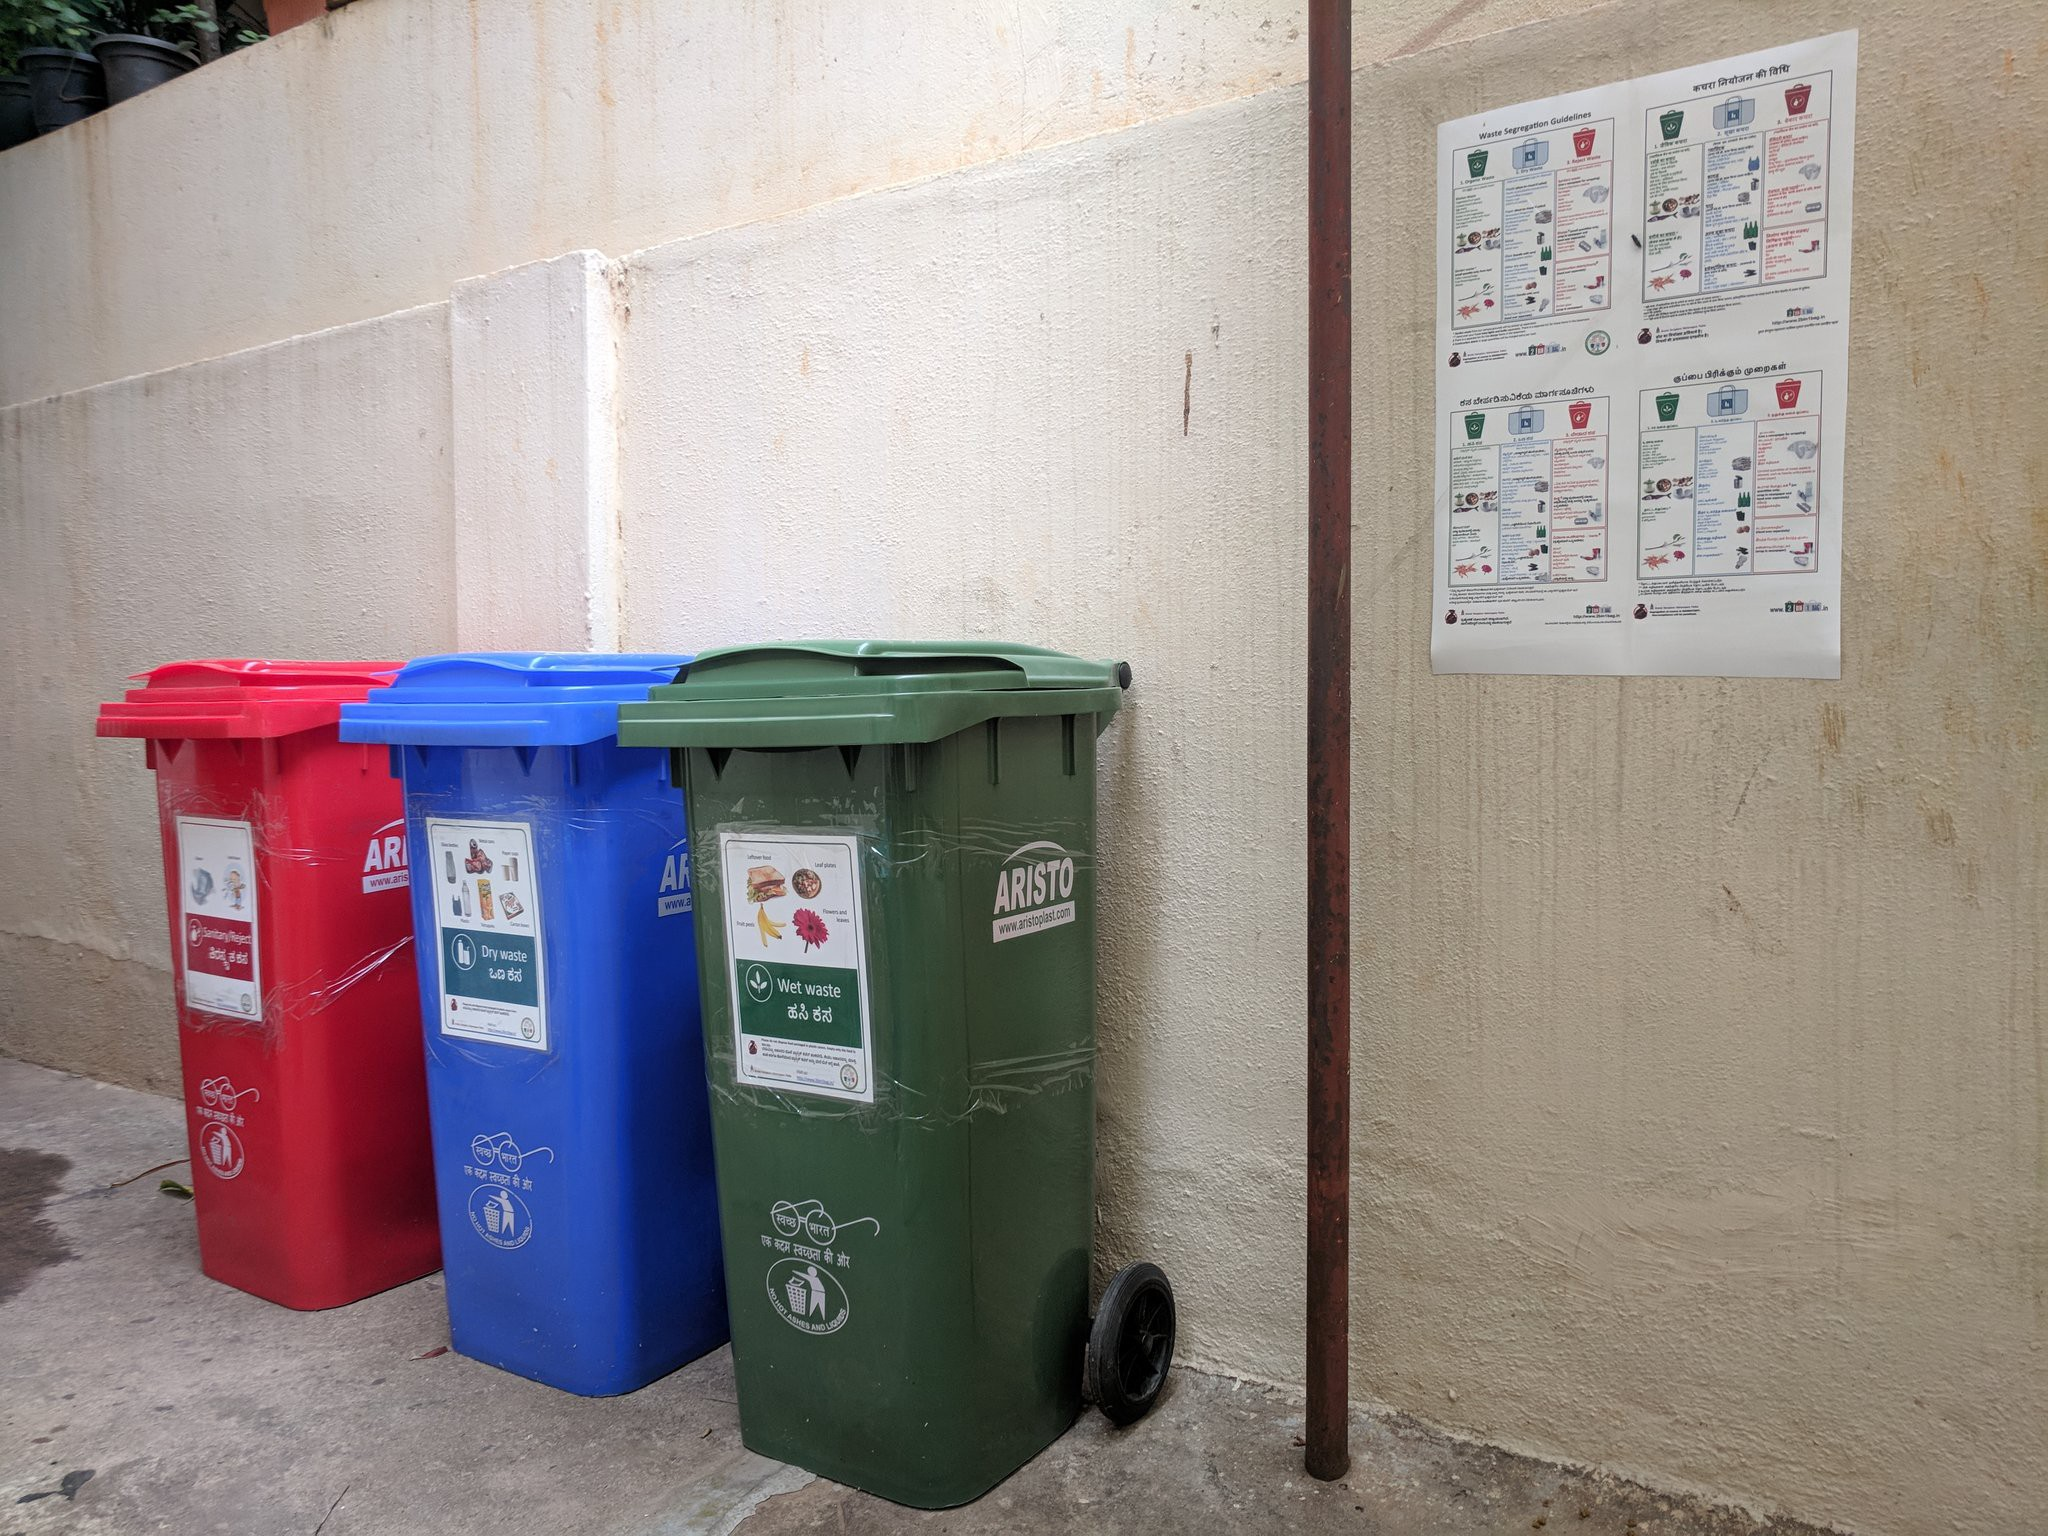 3-Way Segregated Bins at our Bangalore Apartment